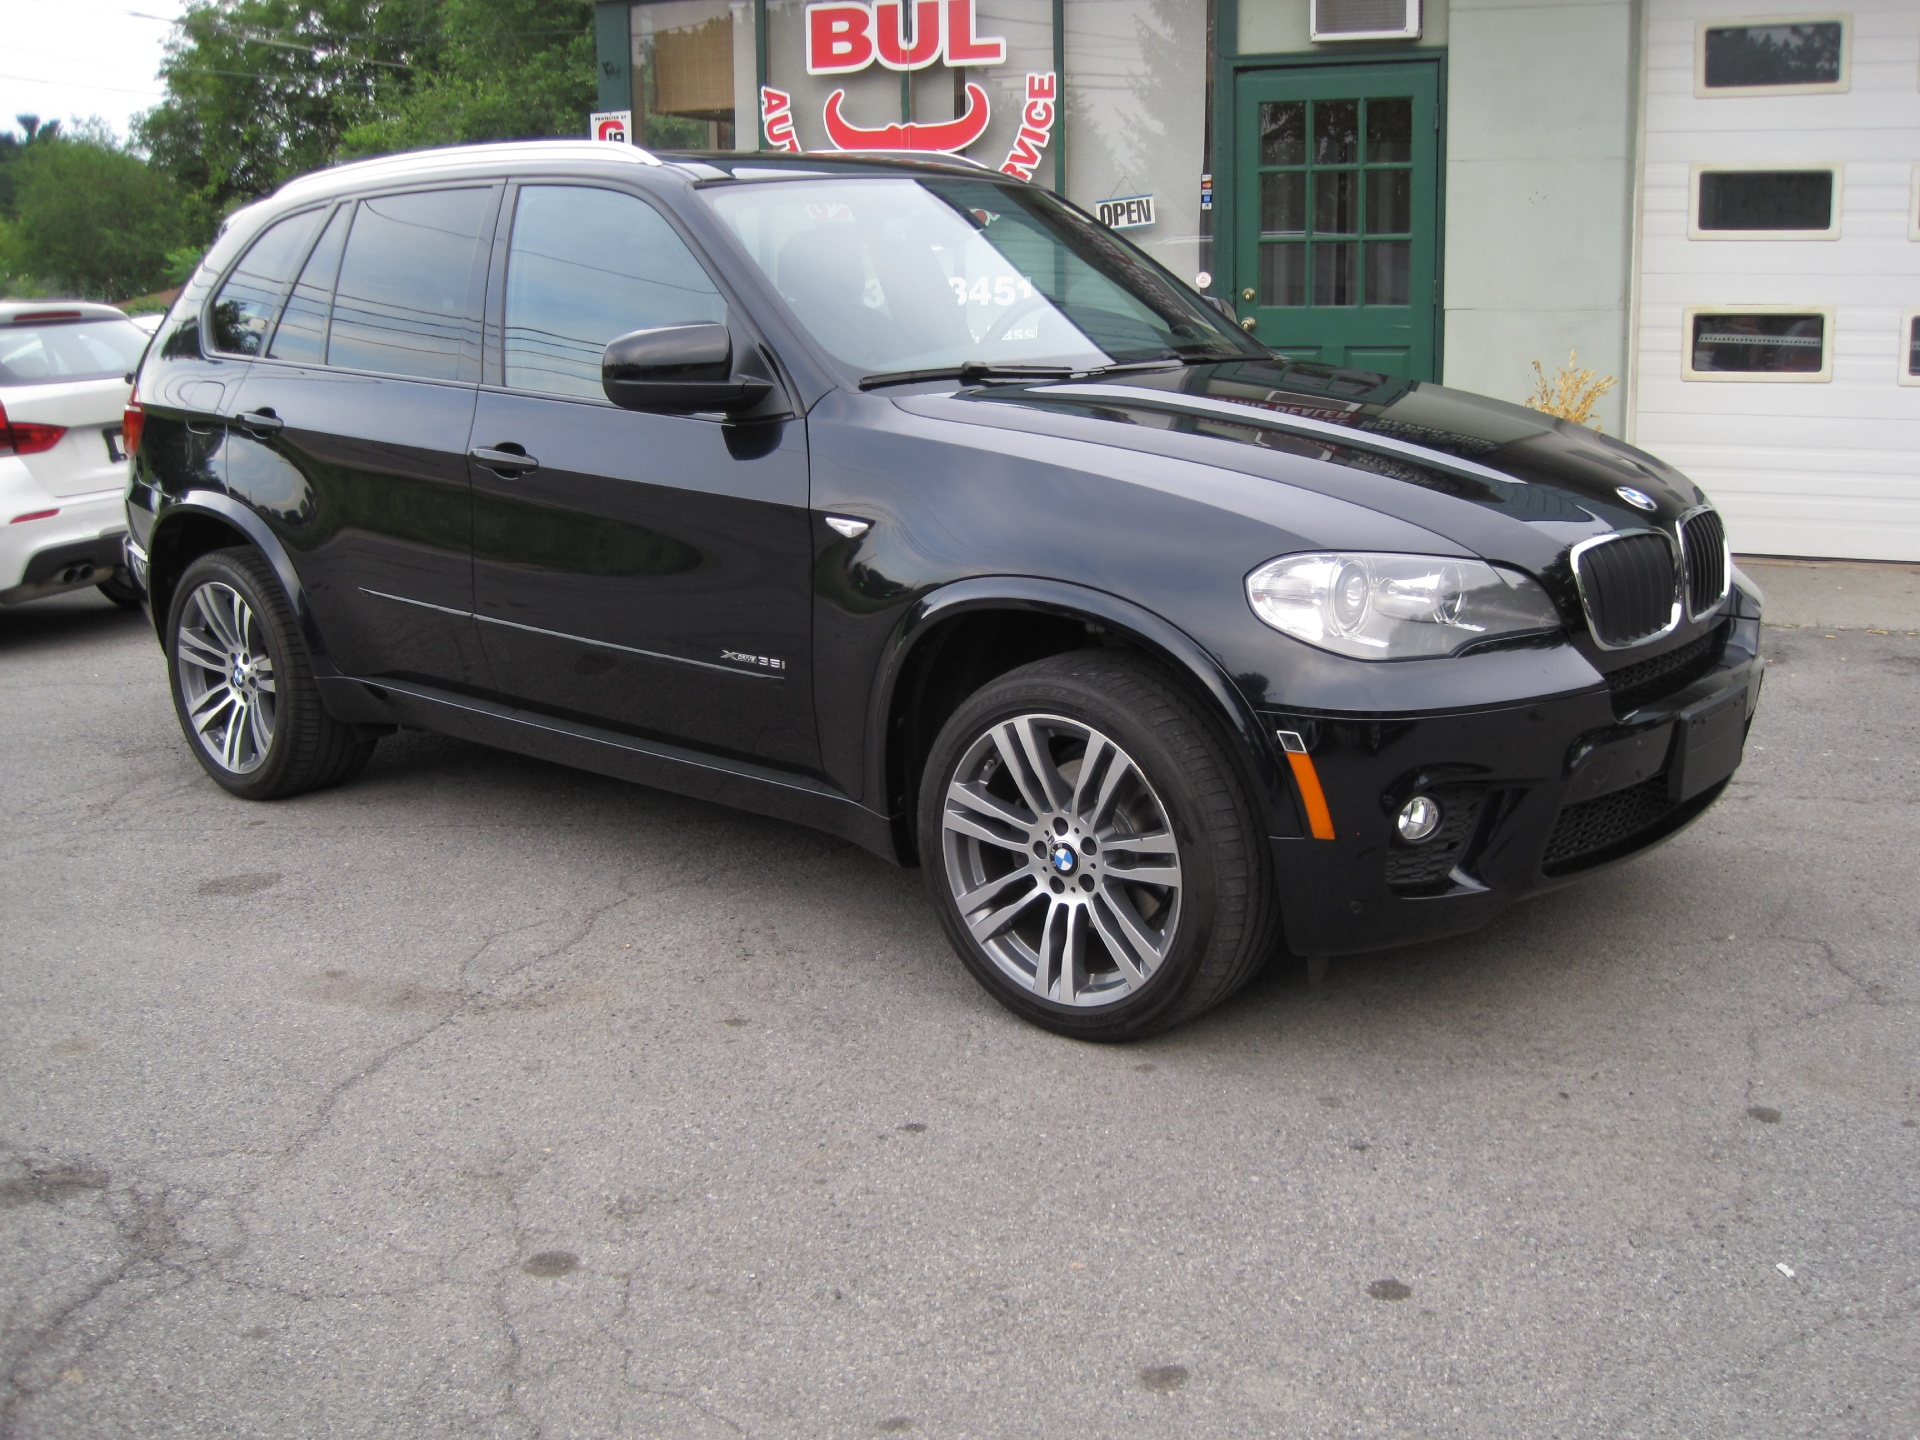 2013 bmw x5 xdrive35i sport activity m sport 20in wheels. Black Bedroom Furniture Sets. Home Design Ideas